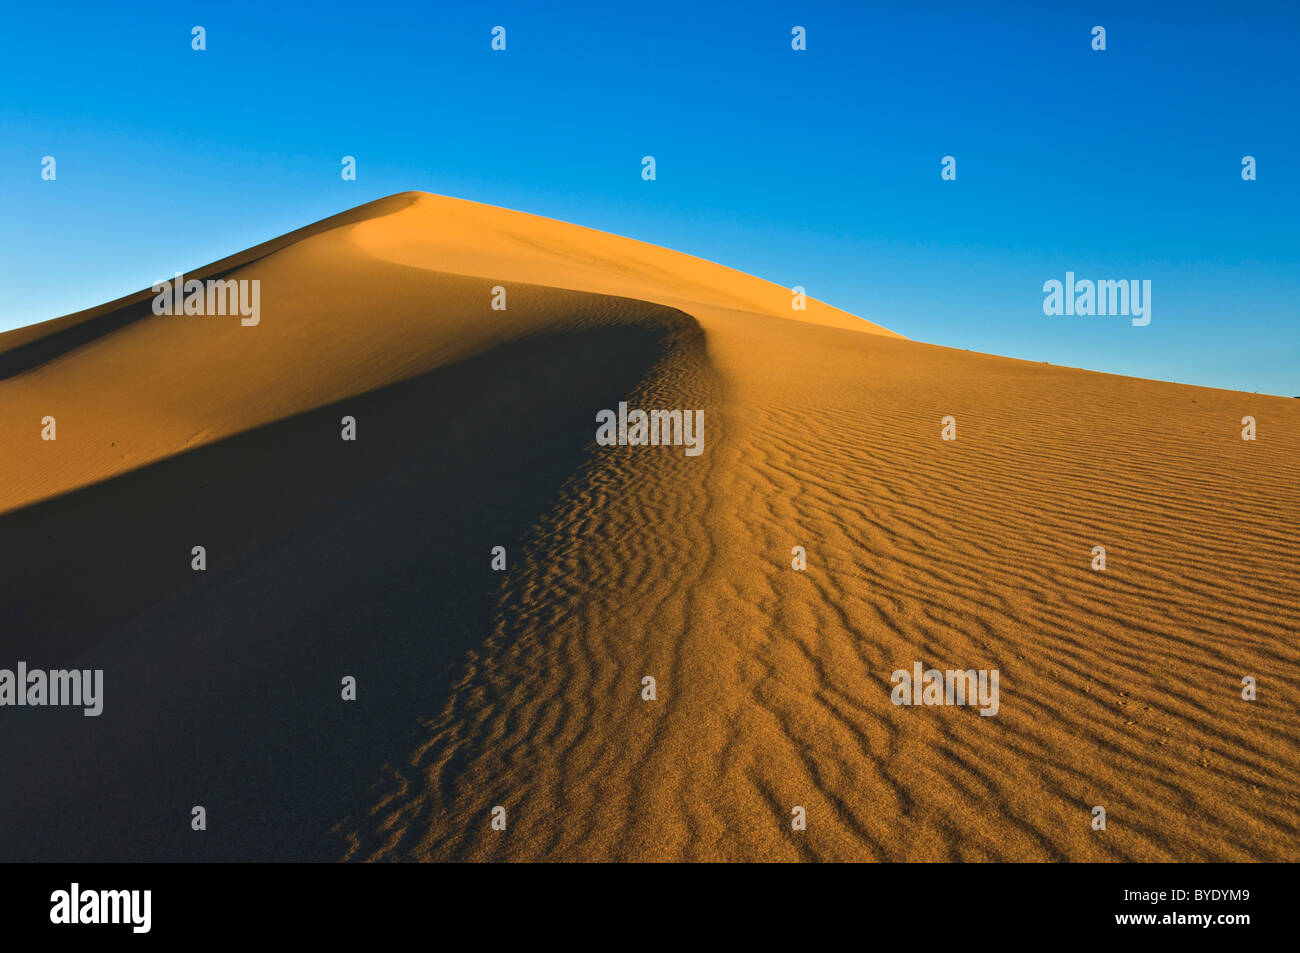 Sand ripples in the dunes of the Mesquite Flats sand dunes, Stovepipe Wells, Death Valley National Park, California, - Stock Image